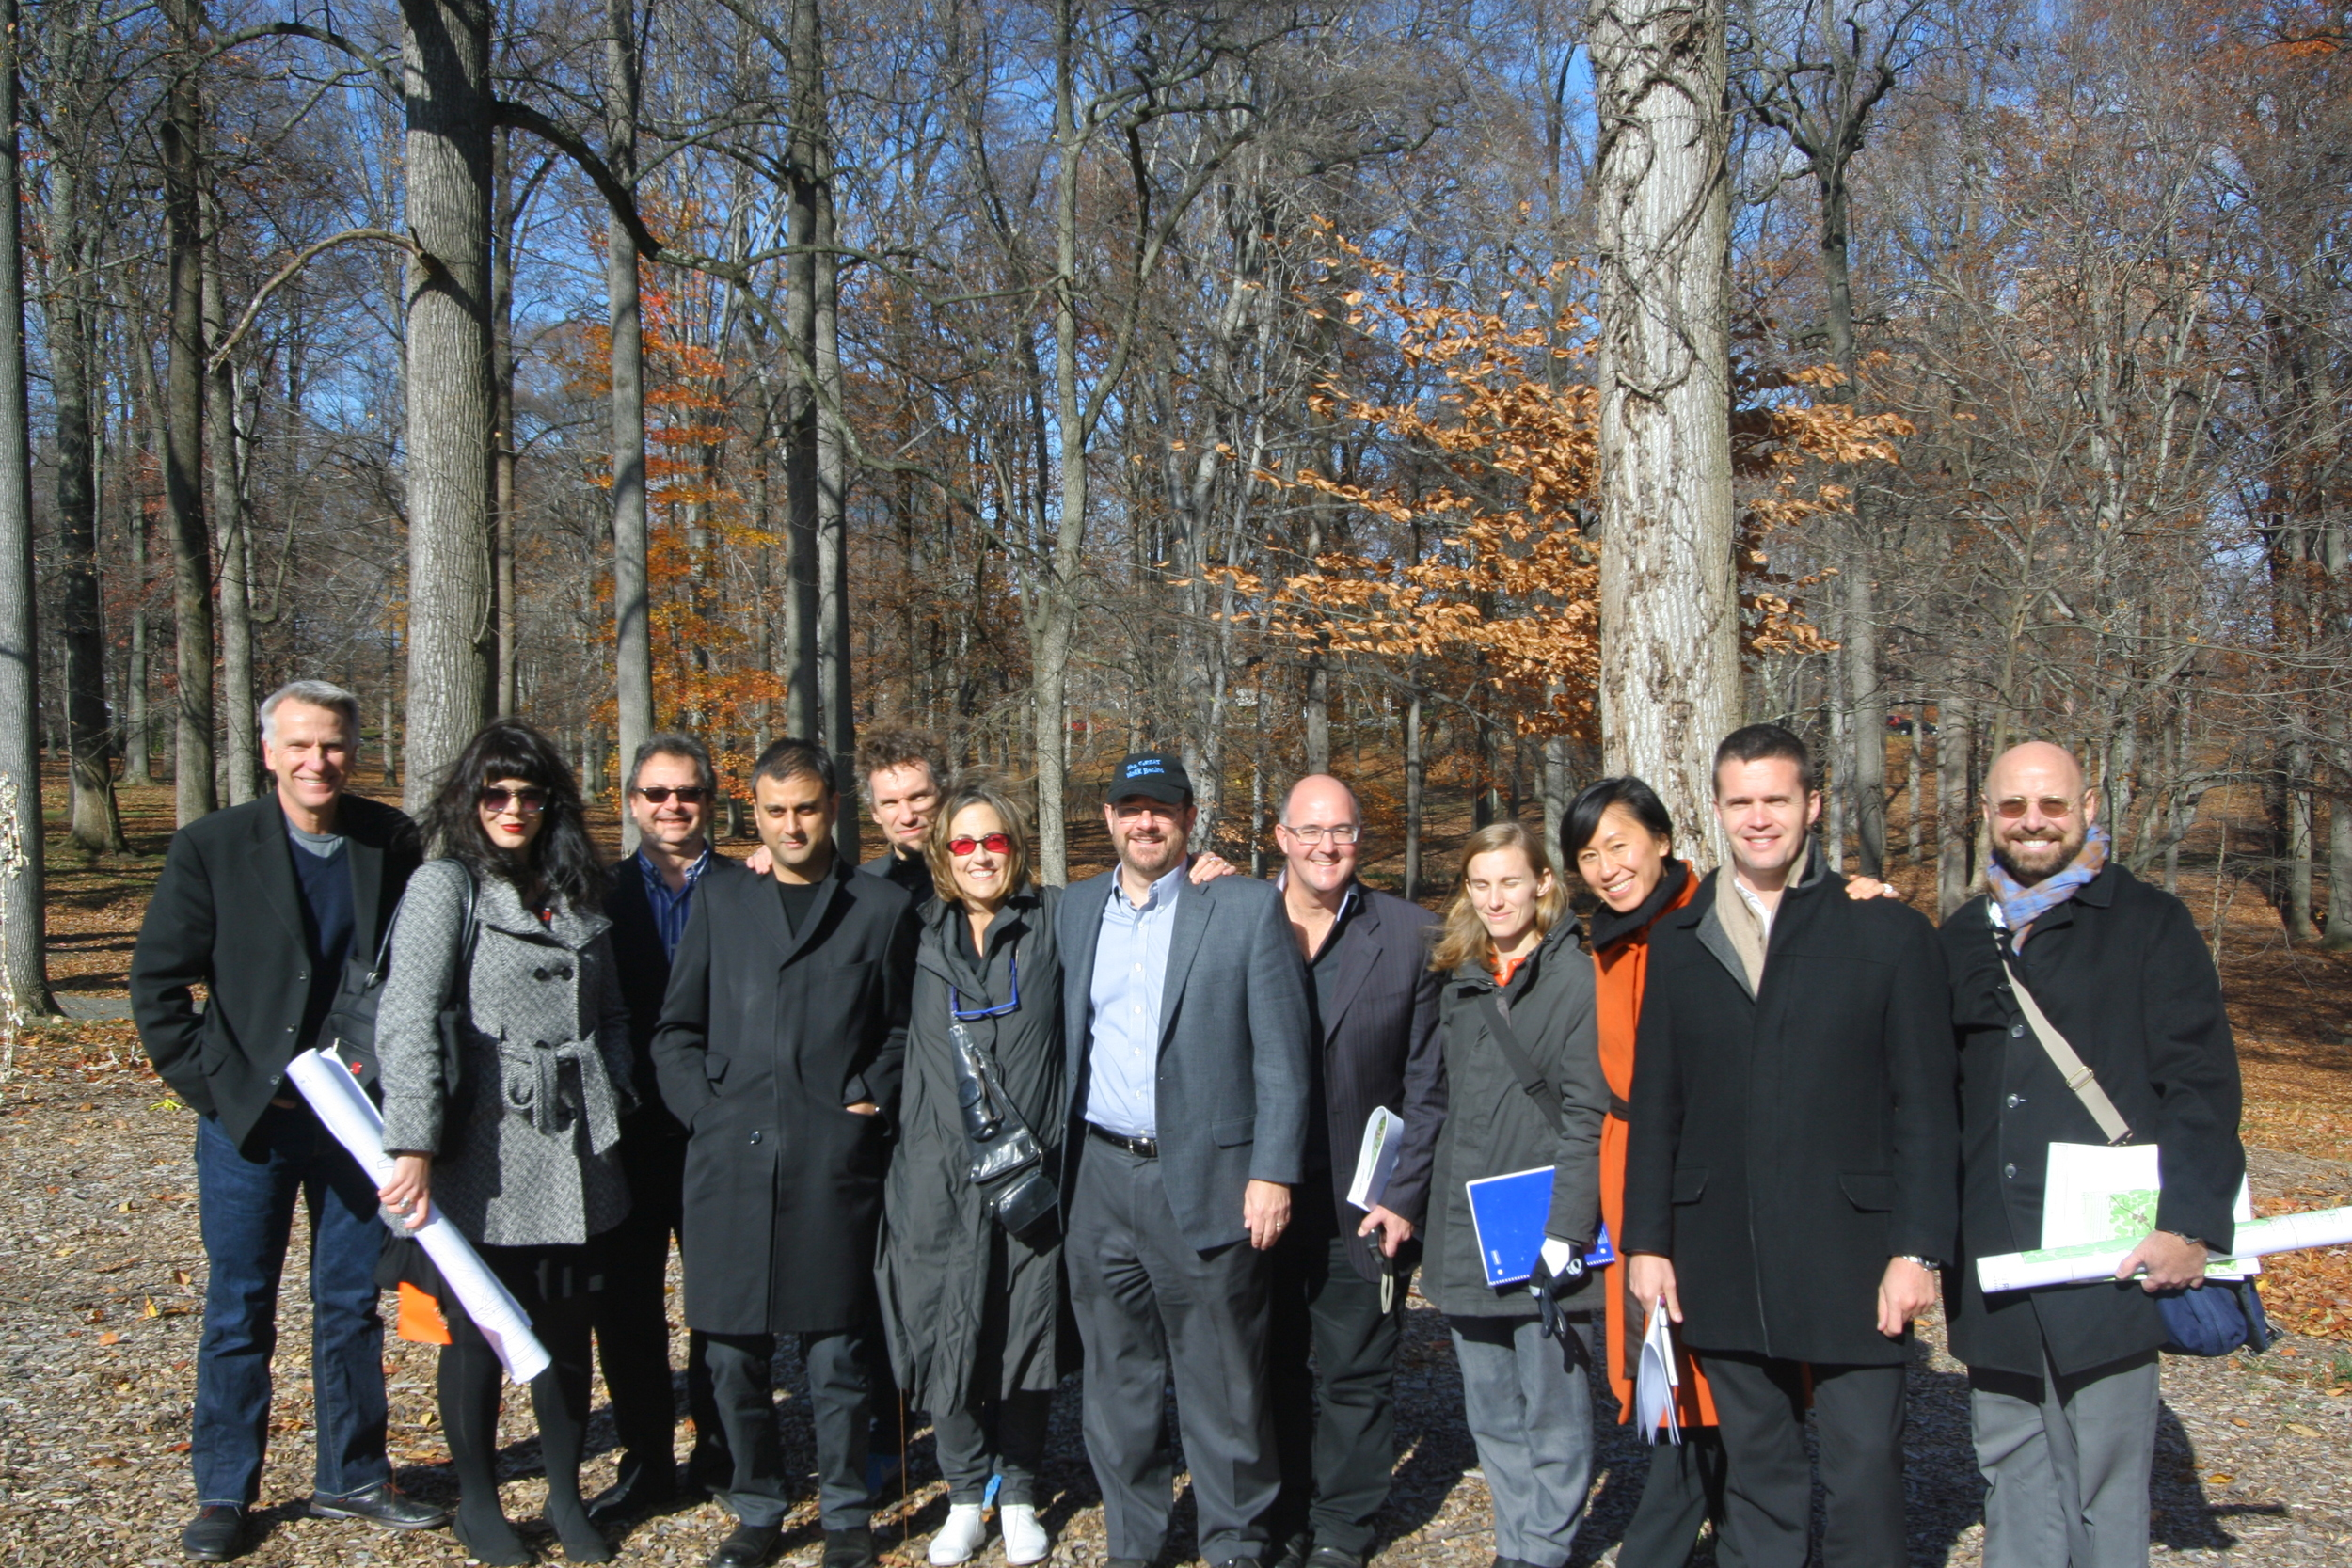 Inner Arbor Trust design team, on the site of The Butterfly guest services building in Symphony Woods, on November 19, 2013